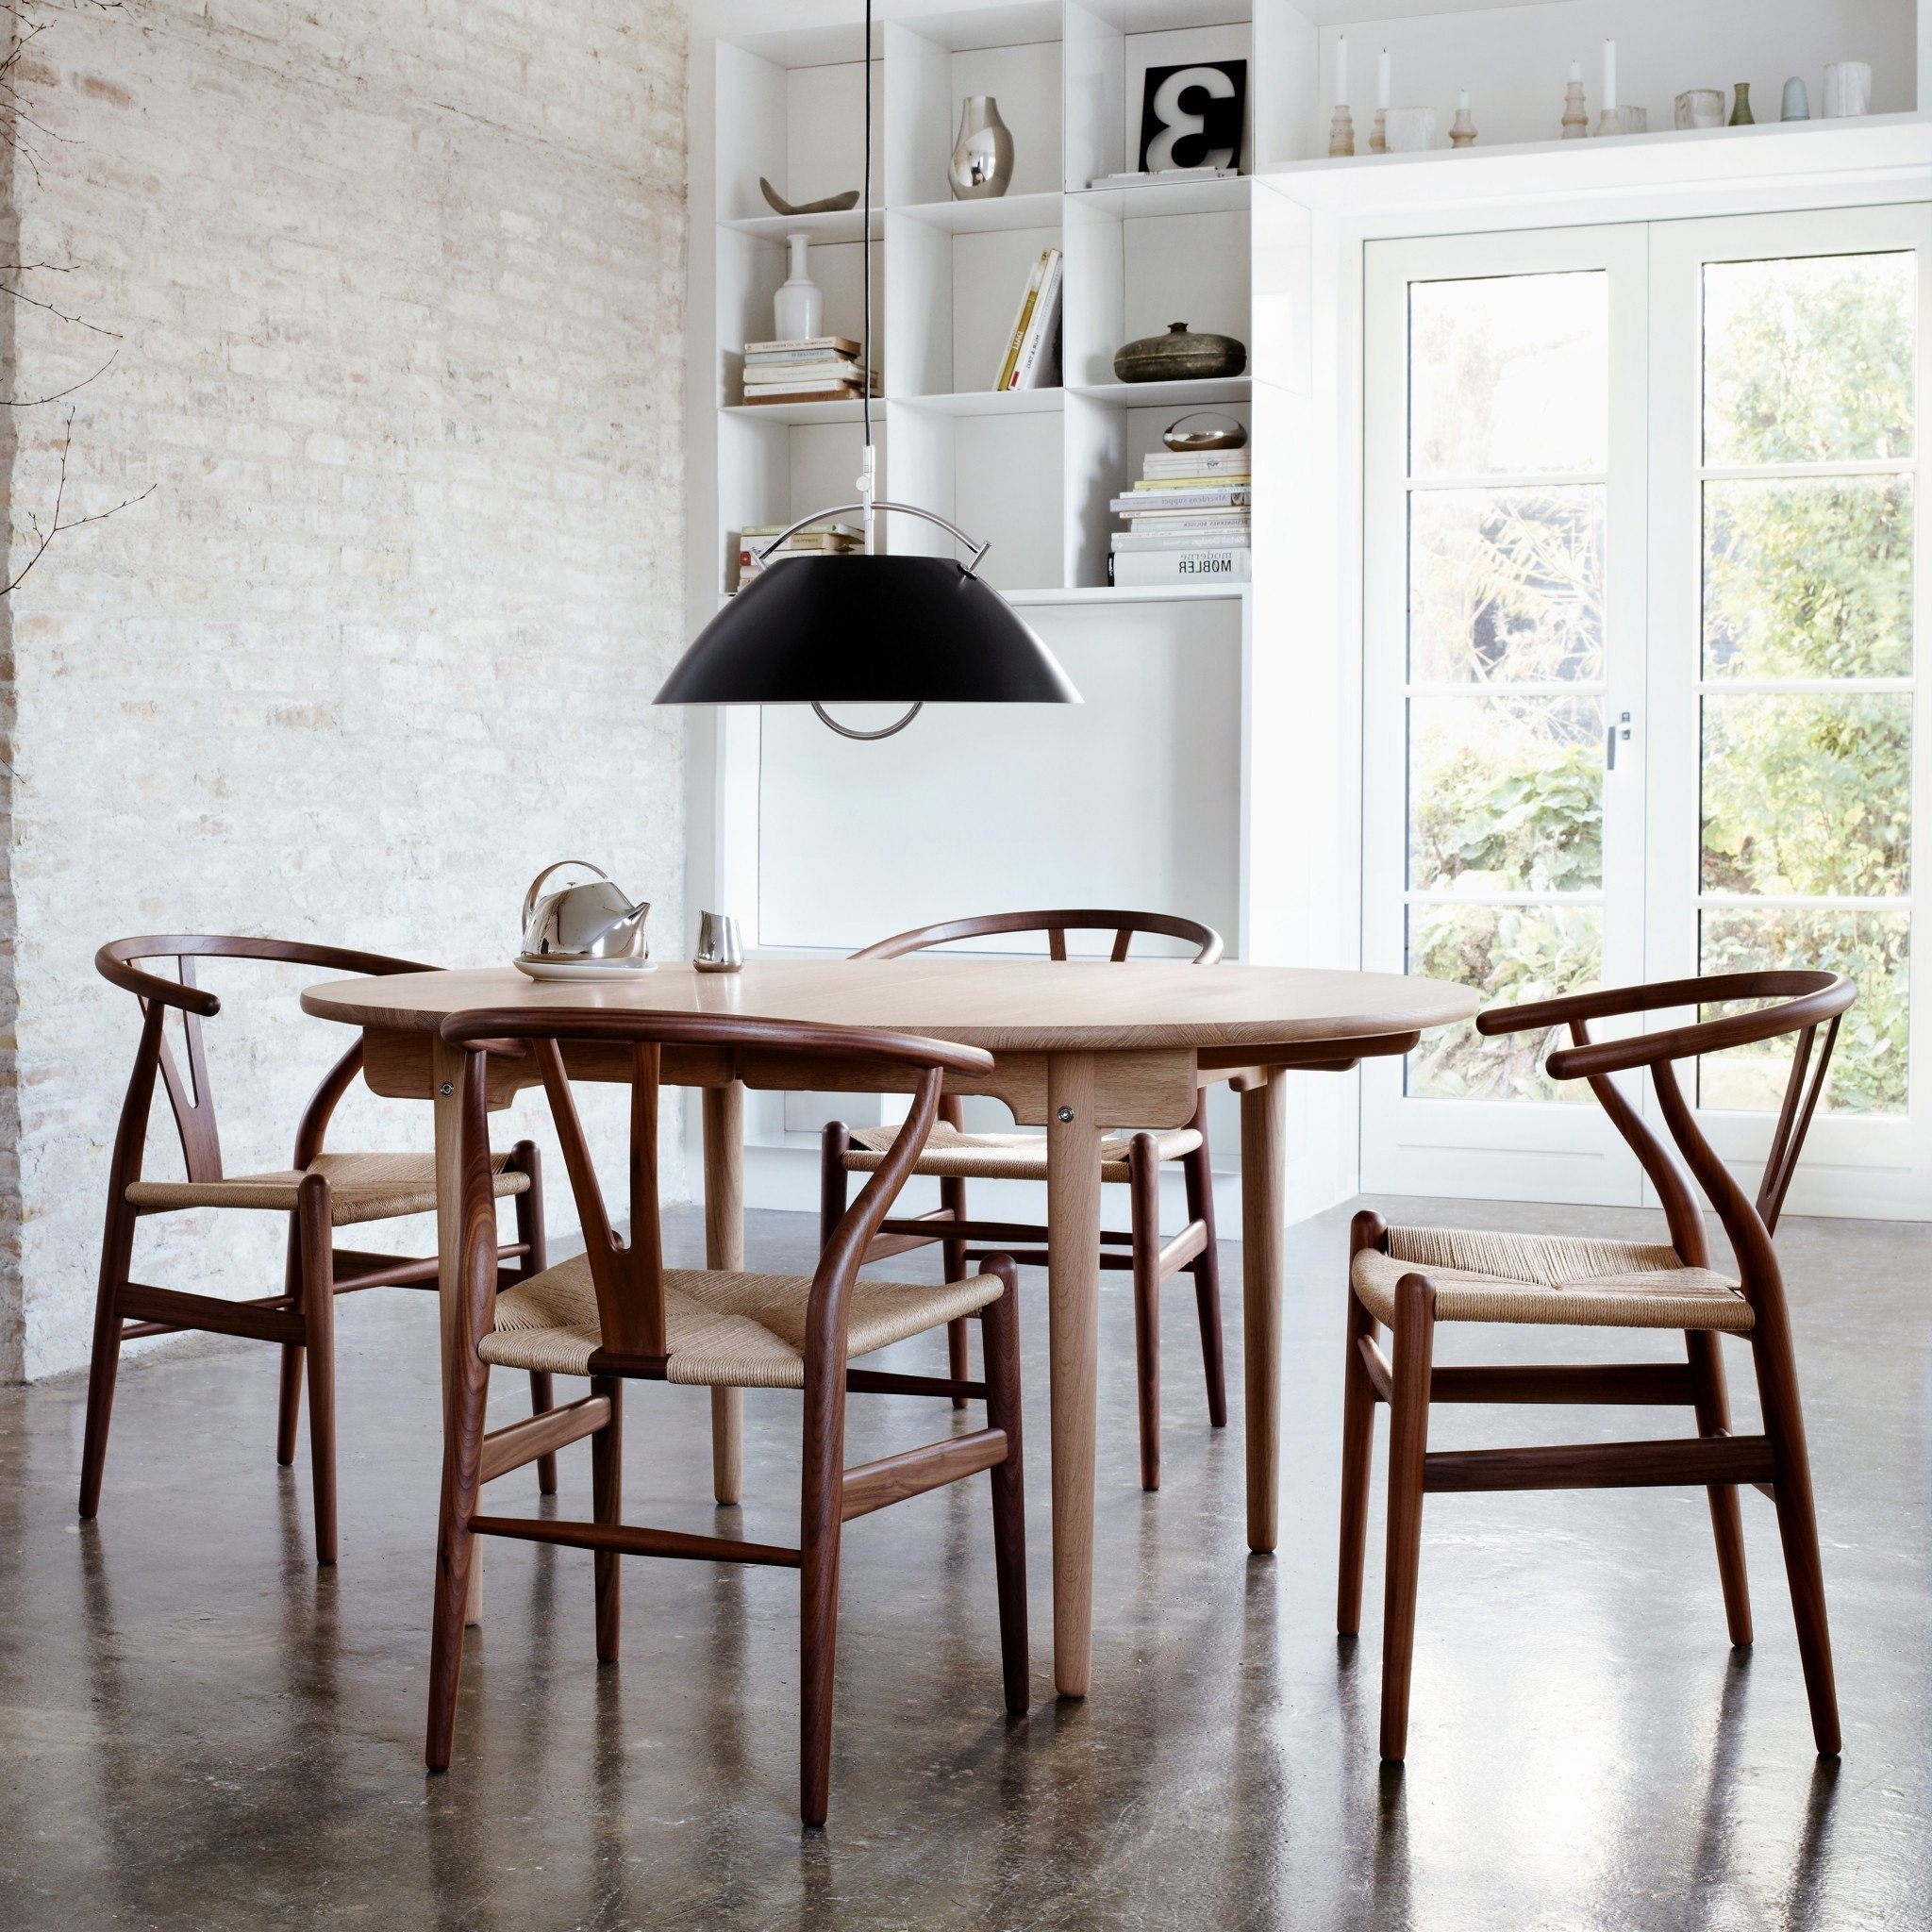 Ch327 Dining Tablecarl Hansen & Søn — Haus® Throughout Recent London Dining Tables (View 18 of 25)